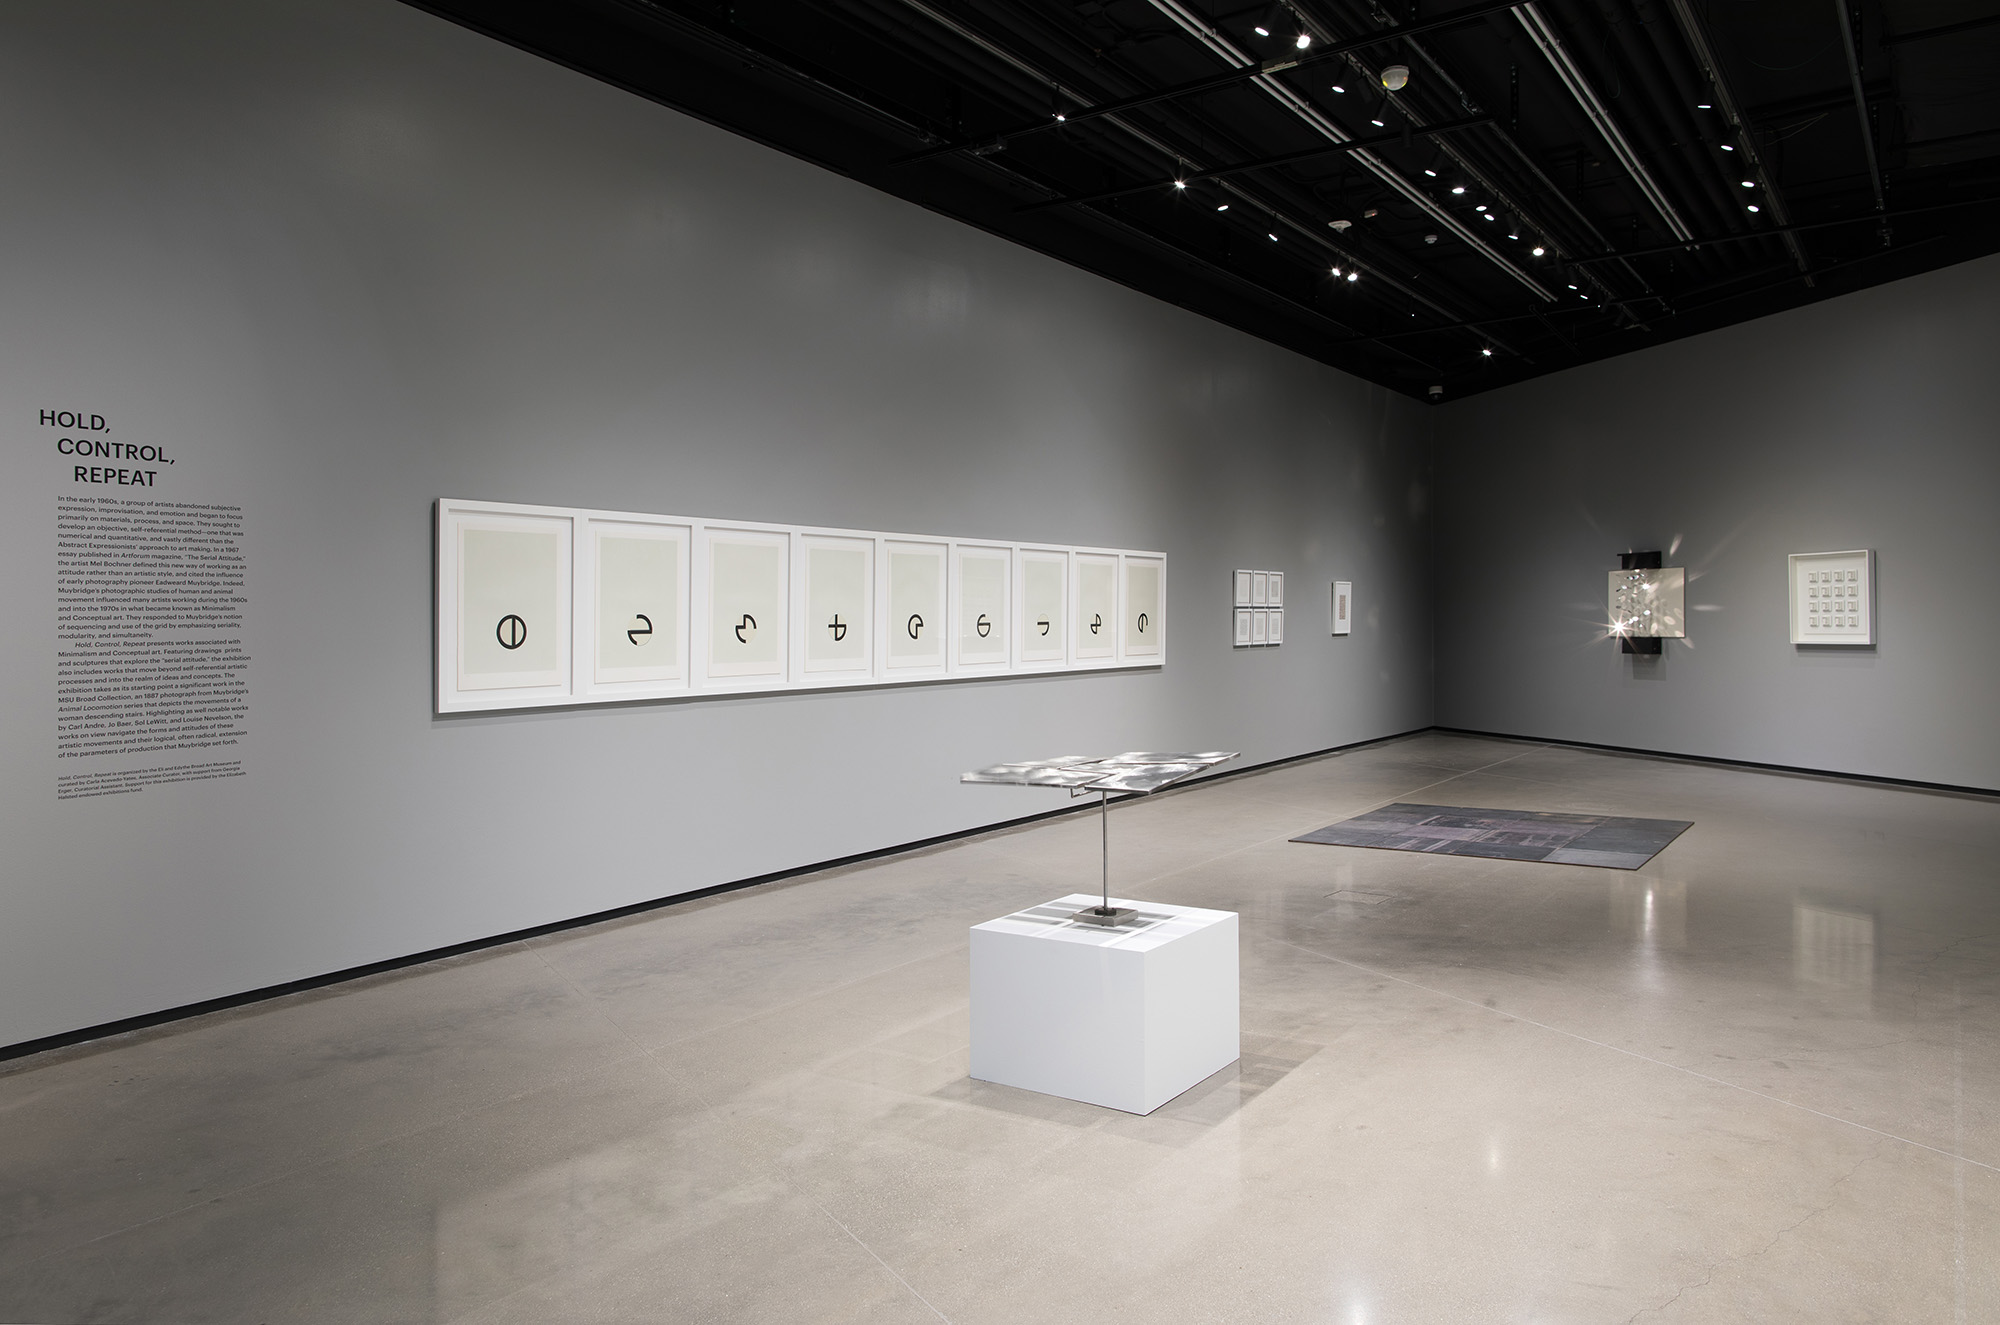 <i>Hold, Control, Repeat</i>, installation view at the Eli and Edythe Broad Art Museum at Michigan State University, 2018. Photo: Eat Pomegranate Photography